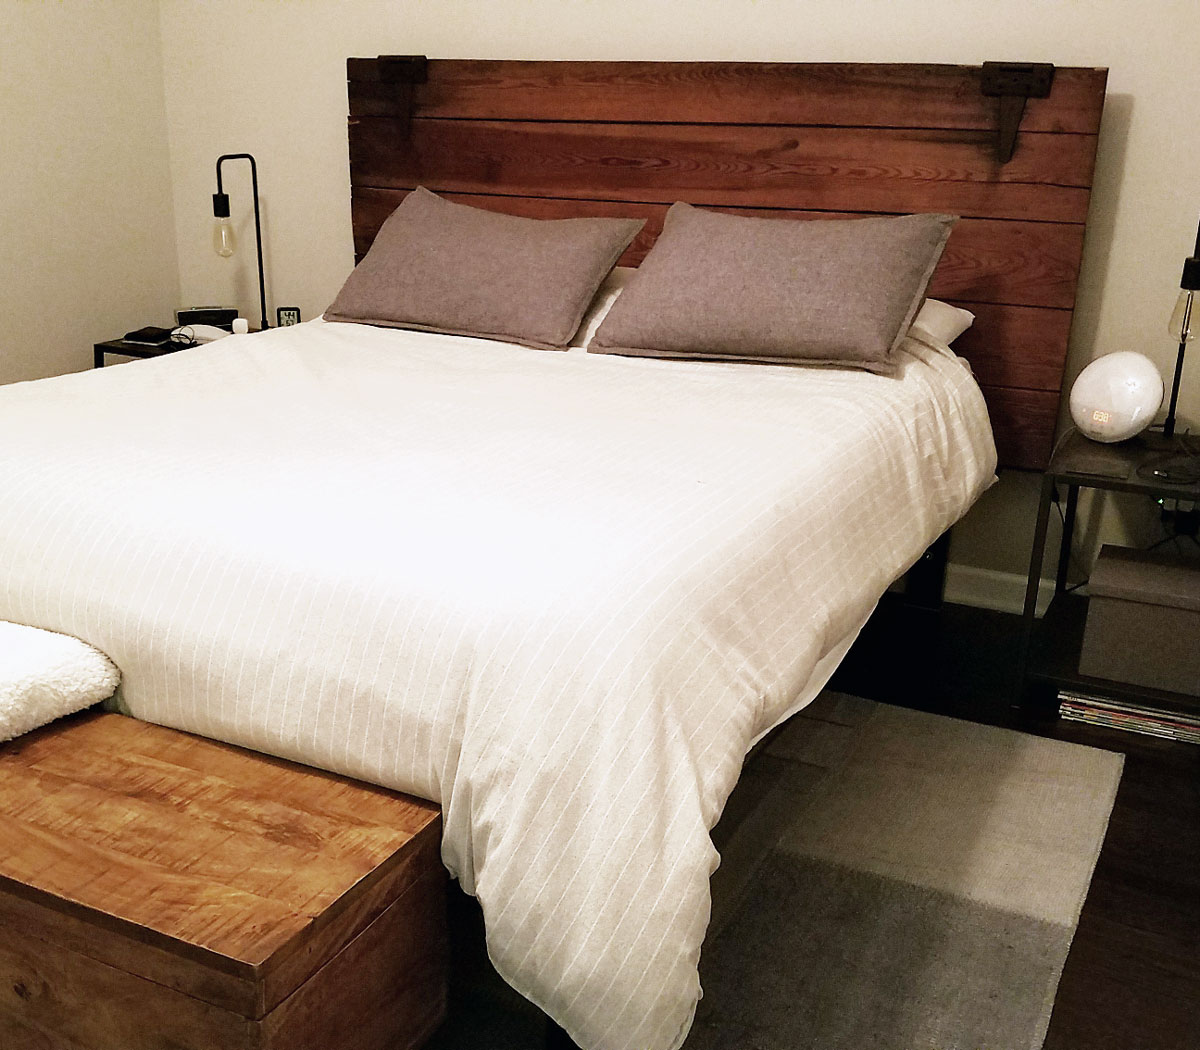 DIY Project: Barn Door to Headboard By Bumble and Bustle